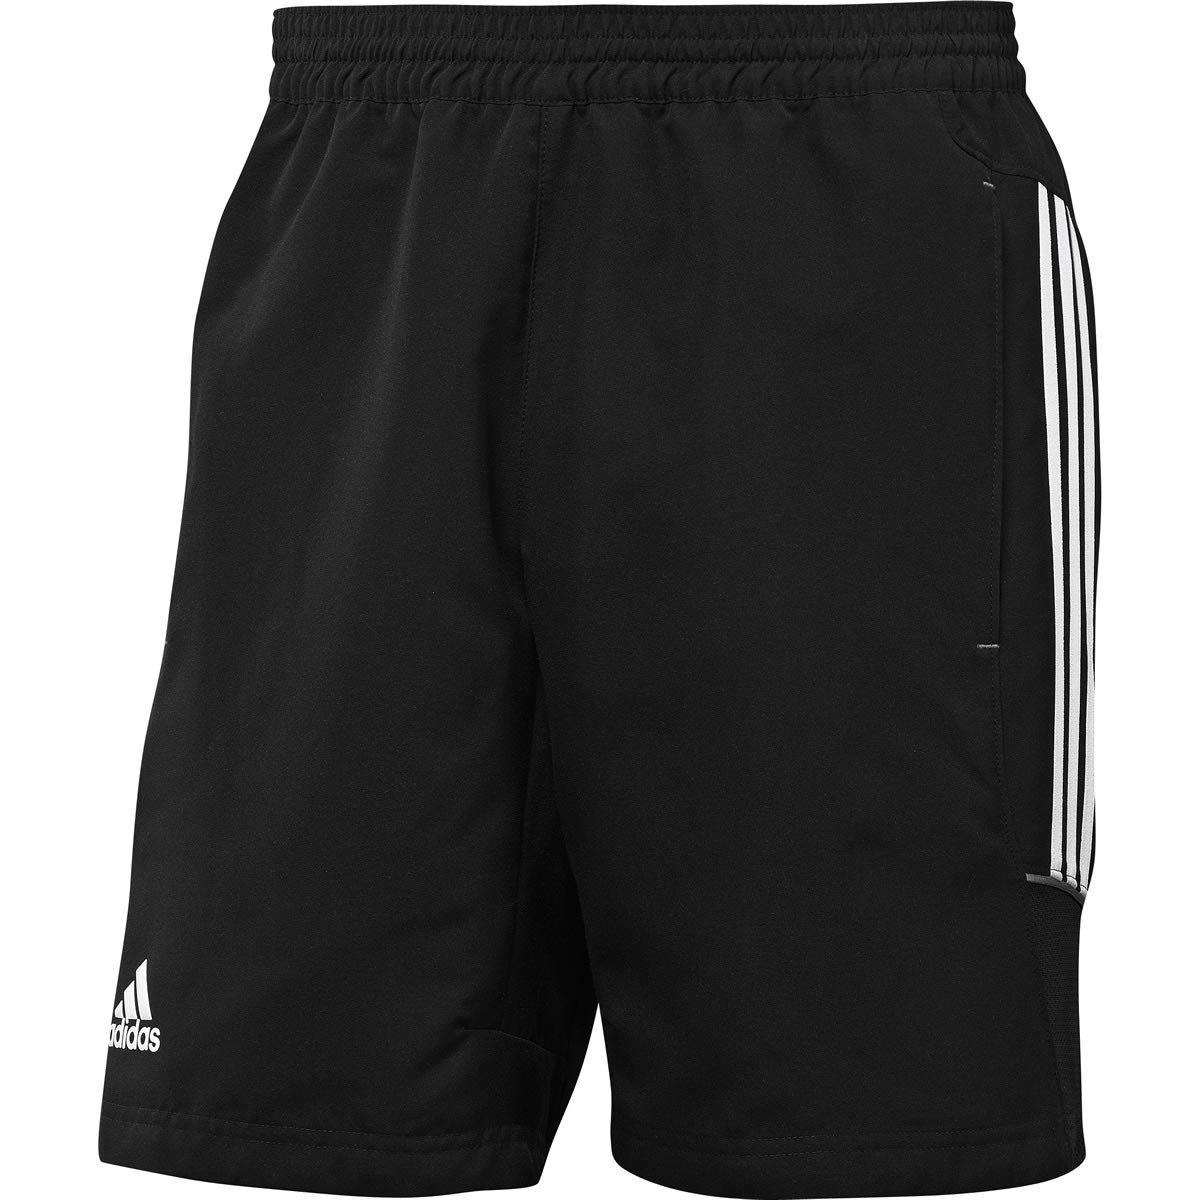 adidas m nner t12 woven short herren kurze hose jogging. Black Bedroom Furniture Sets. Home Design Ideas